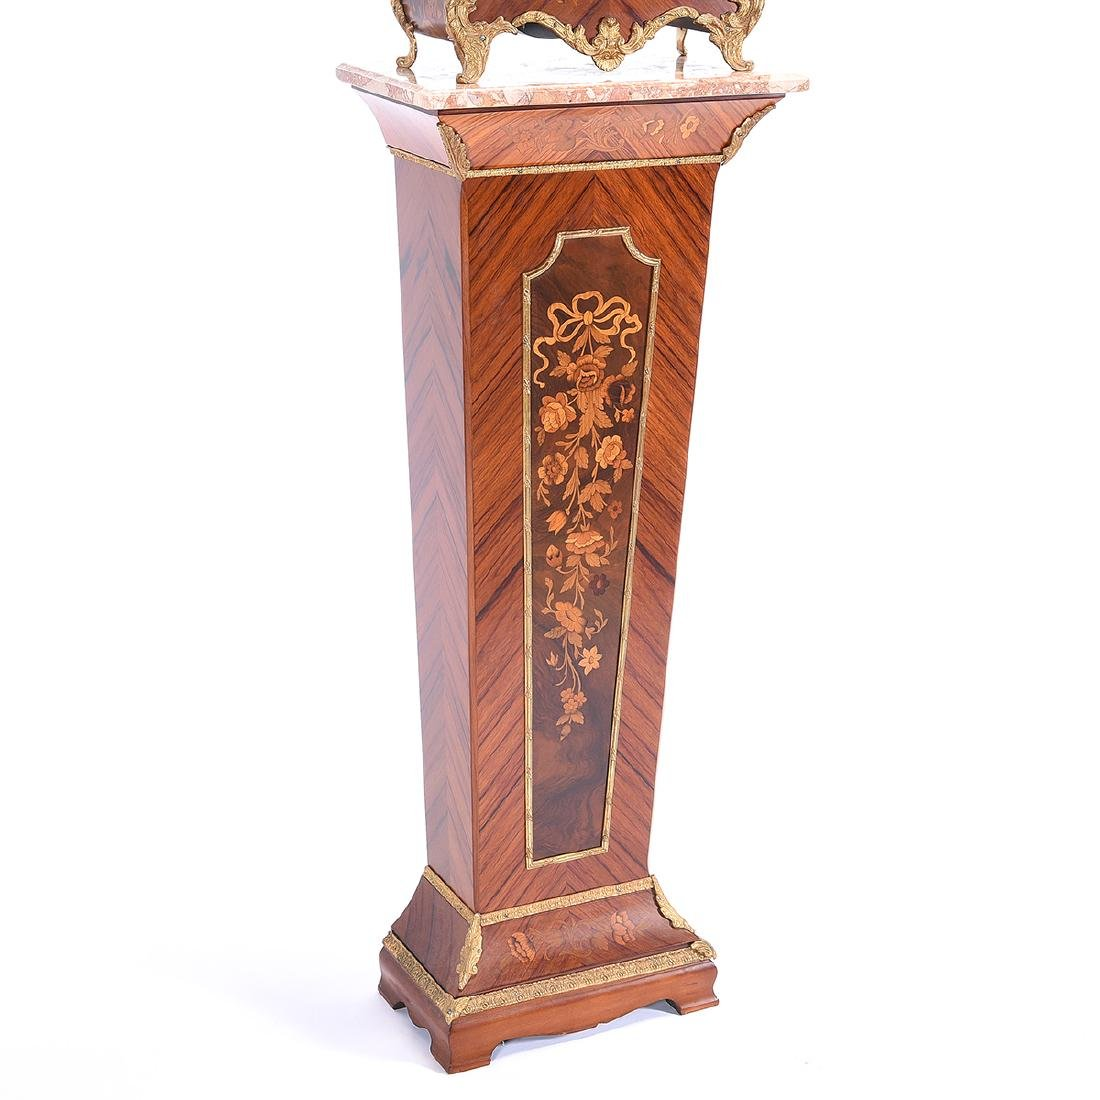 Tiffany Marquetry Mantel Clock on Plinth Pedestal Base - 2